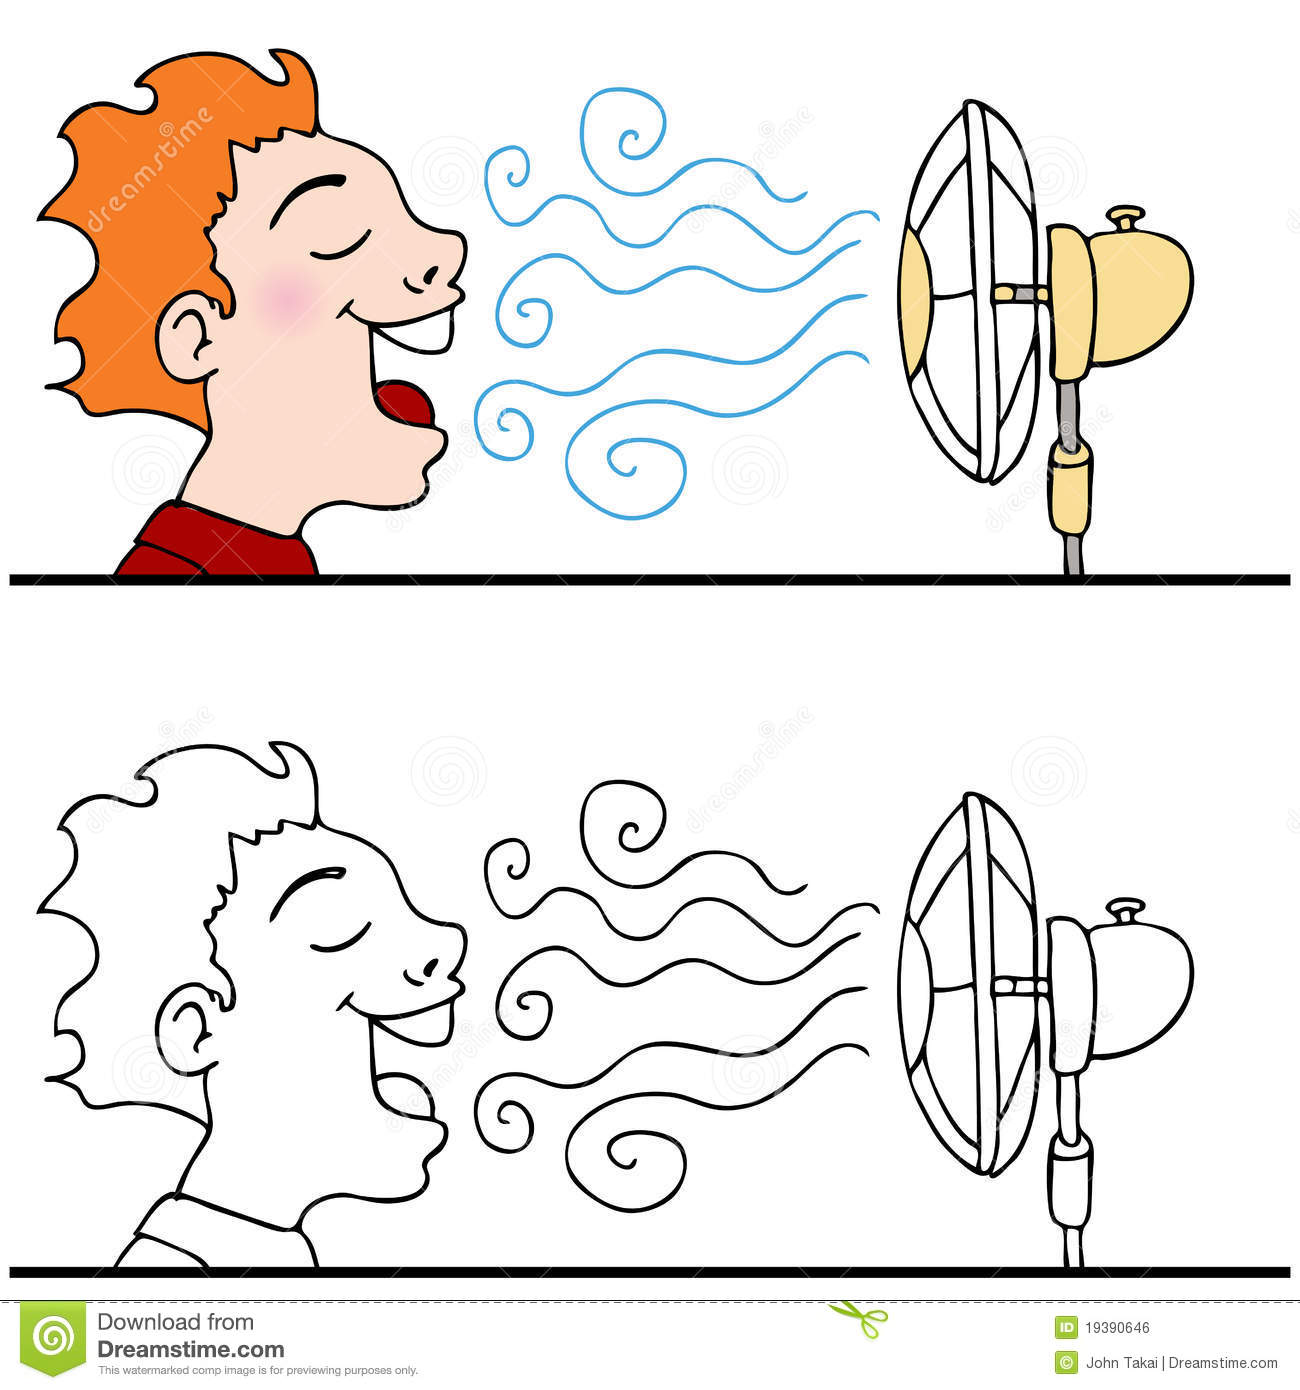 Cooling Off With Fan : Man cooling off using an electric fan royalty free stock